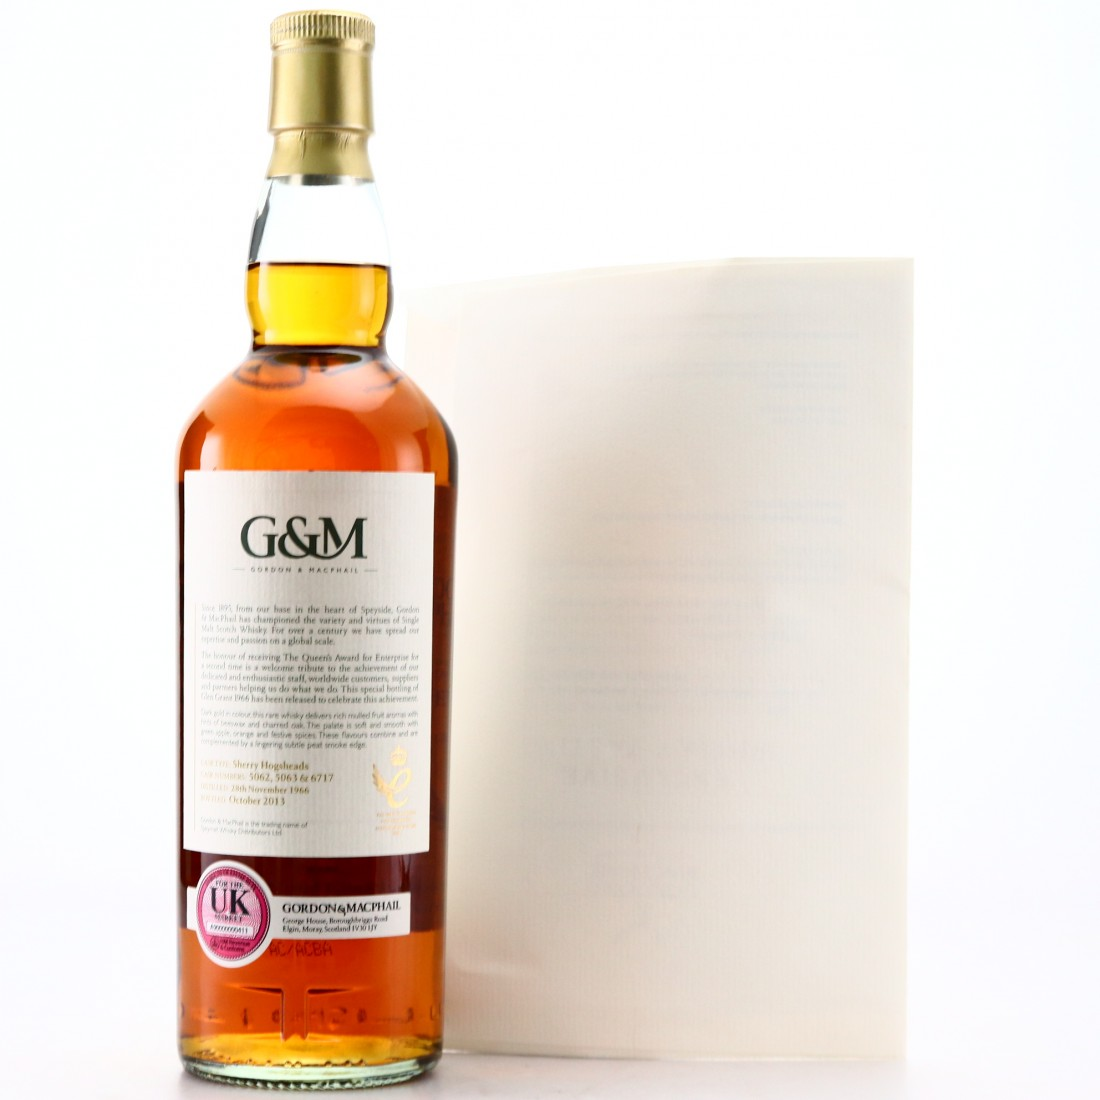 Glen Grant 1966 Gordon and MacPhail / Queen's Award for Enterprise with Whisky Tasting / Highland Hospice Charity Lot